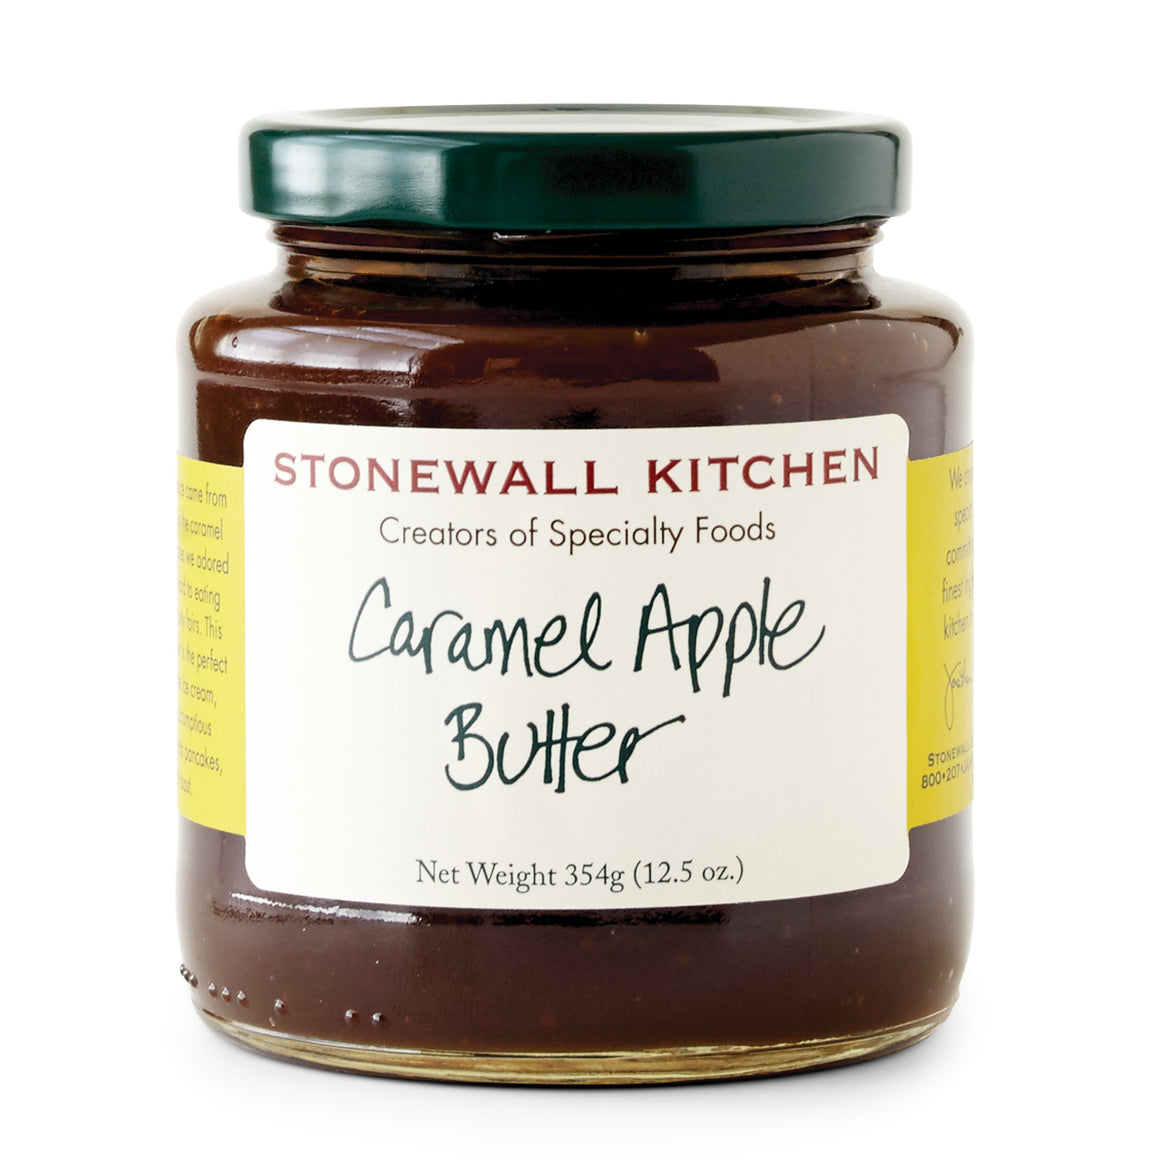 Caramel Apple Butter by Stonewall Kitchen